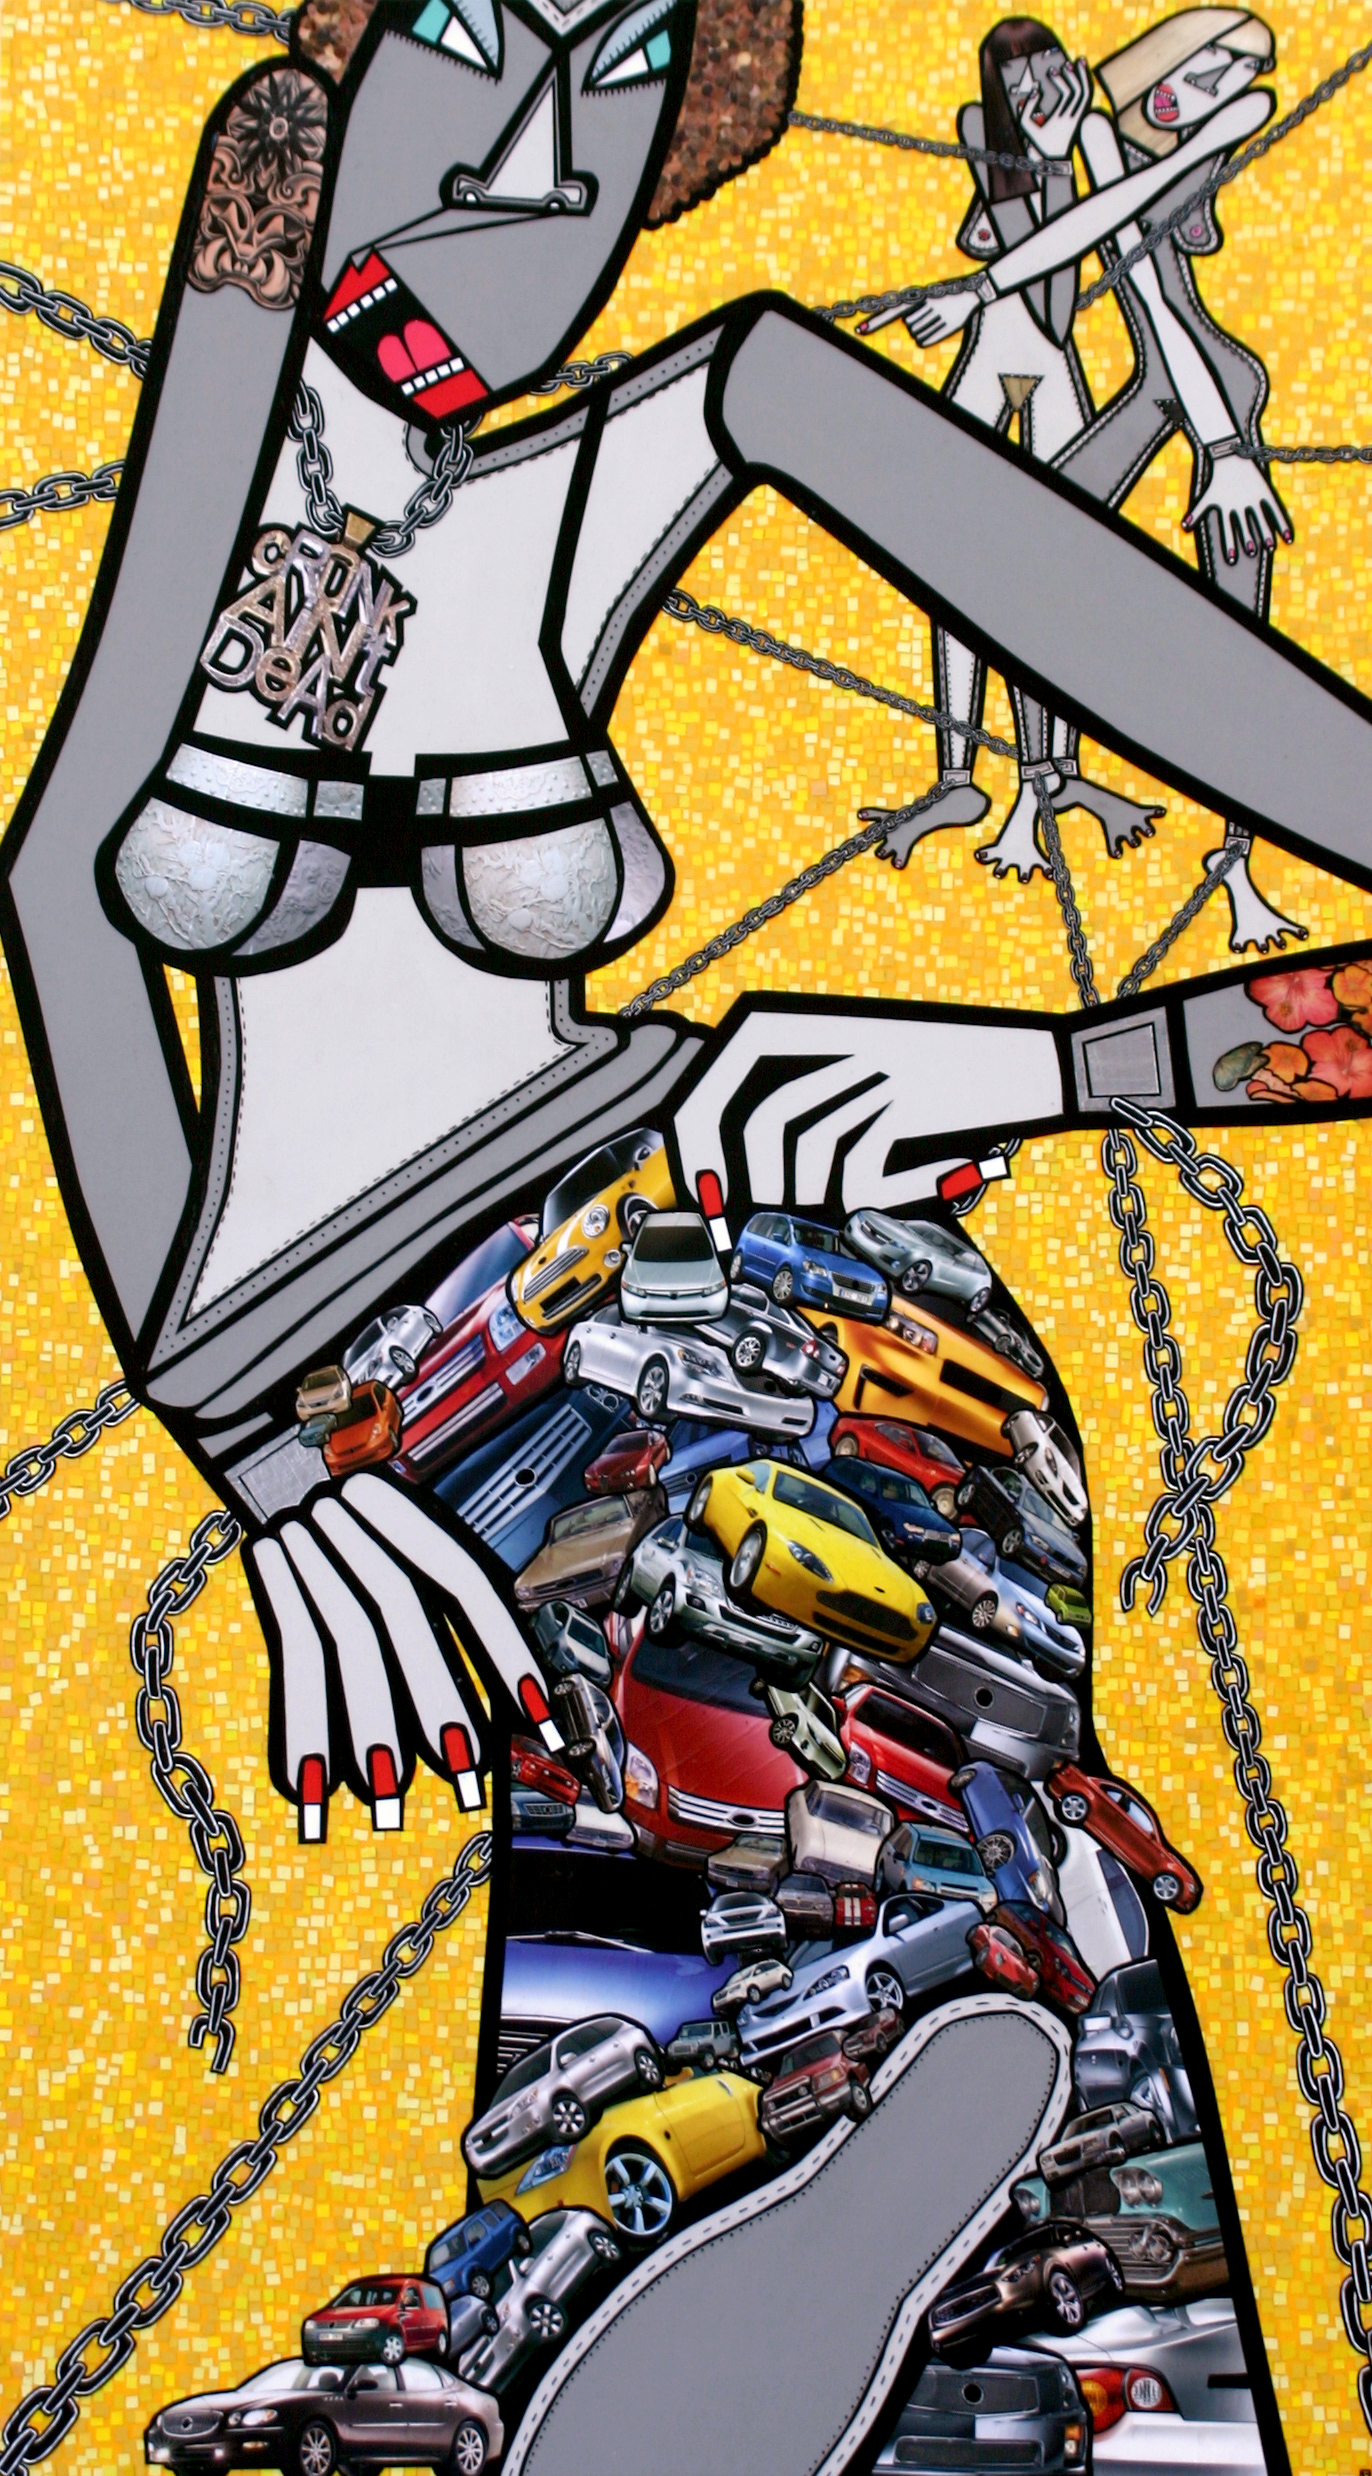 """♂♀ NO MORE!, acrylic and paper collage on canvas, 50"""" x 28"""", 2009, private collection"""